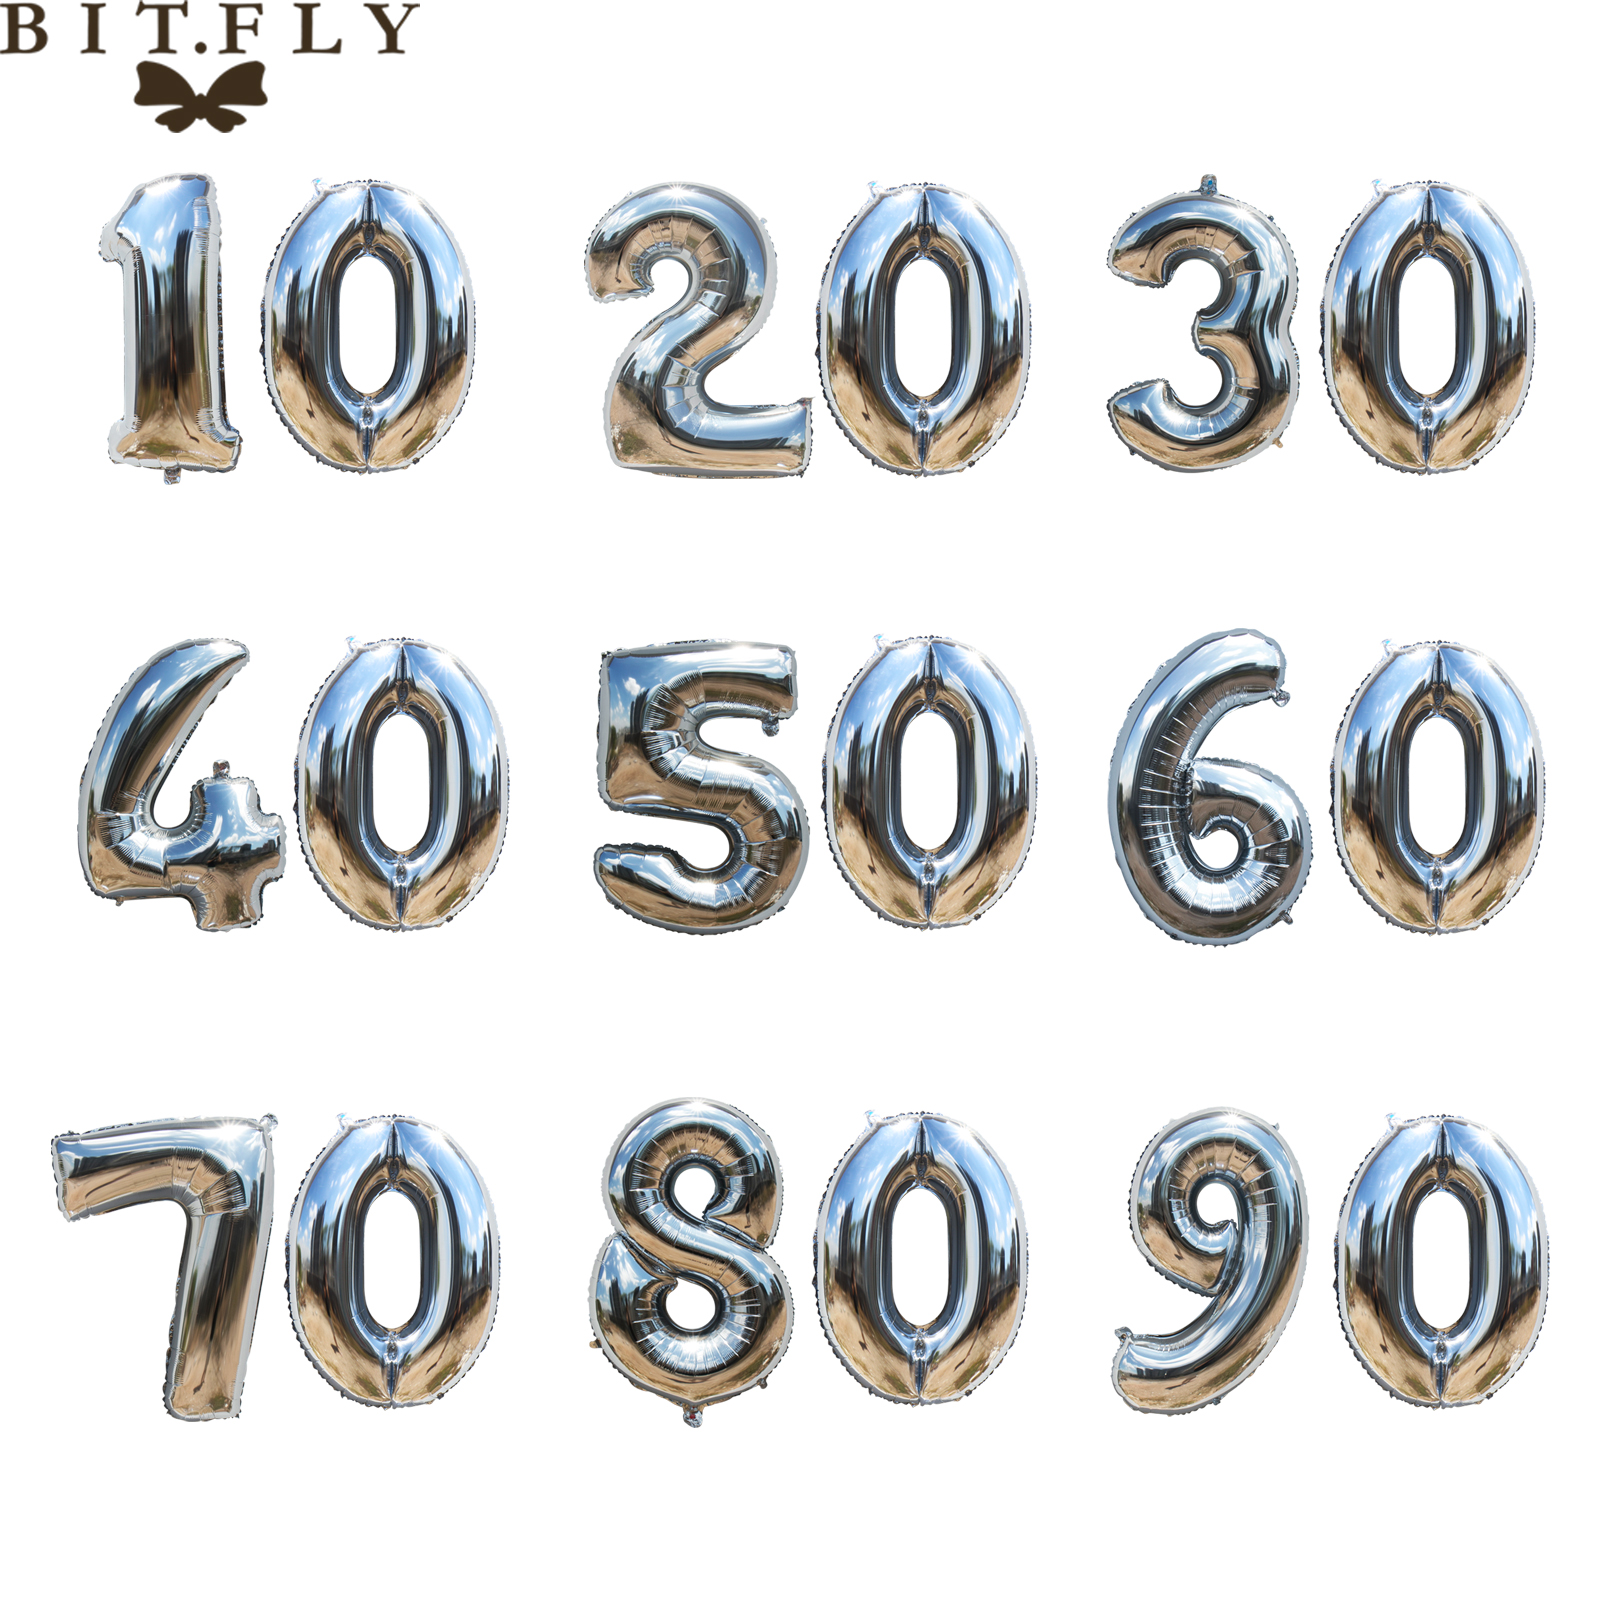 40 inch <font><b>Birthday</b></font> party Gold sliver aluminum foil number Balloons 10 20 30 40 50 60 <font><b>70</b></font> 80 90 years Anniversary DIY <font><b>decoration</b></font> image